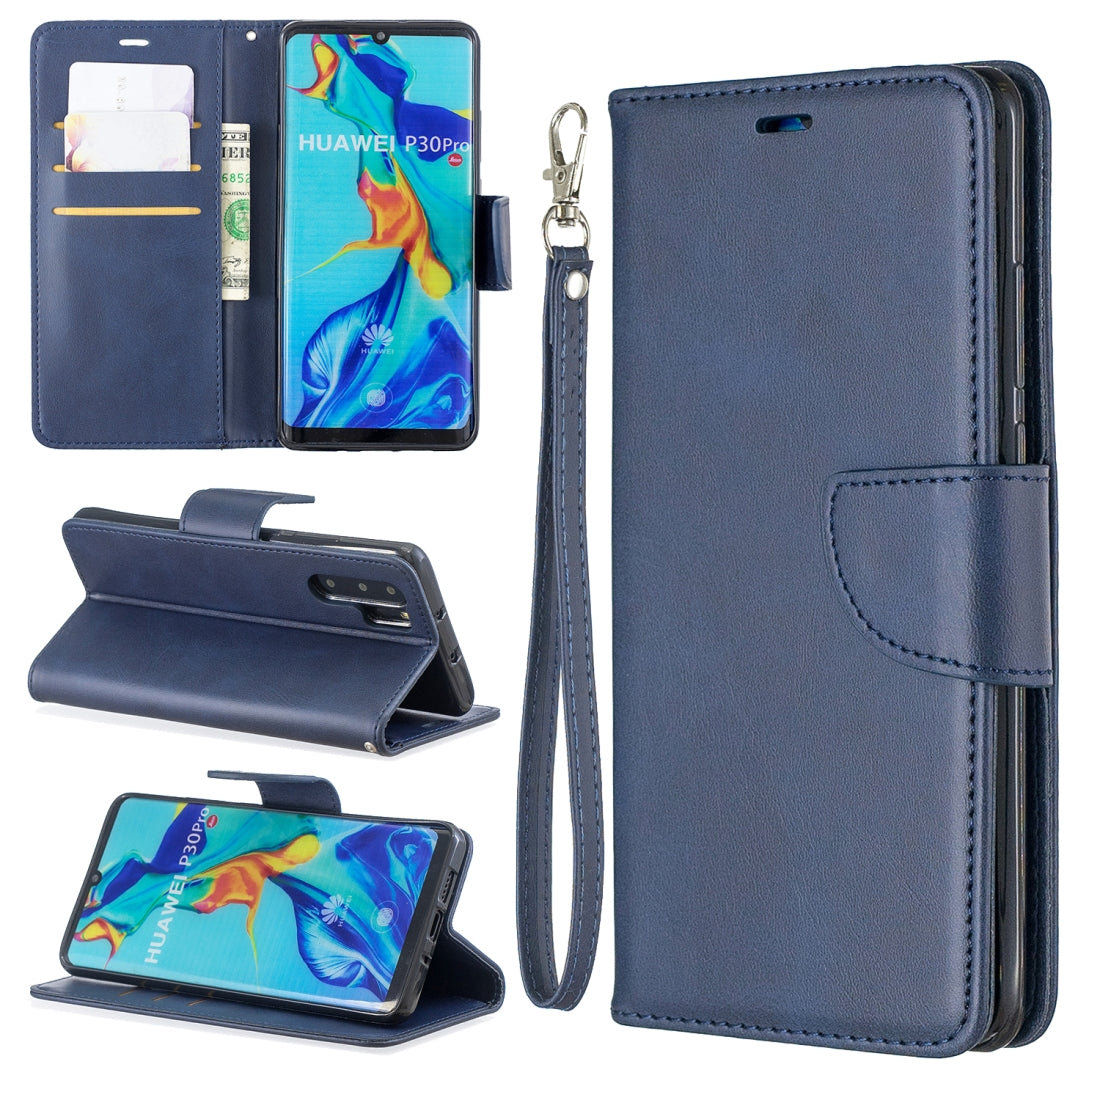 Retro Lambskin Texture Pure Color Horizontal Flip PU Leather Case for Huawei P30 Pro, with Holder & Card Slots & Wallet & Lanyard(Blue)